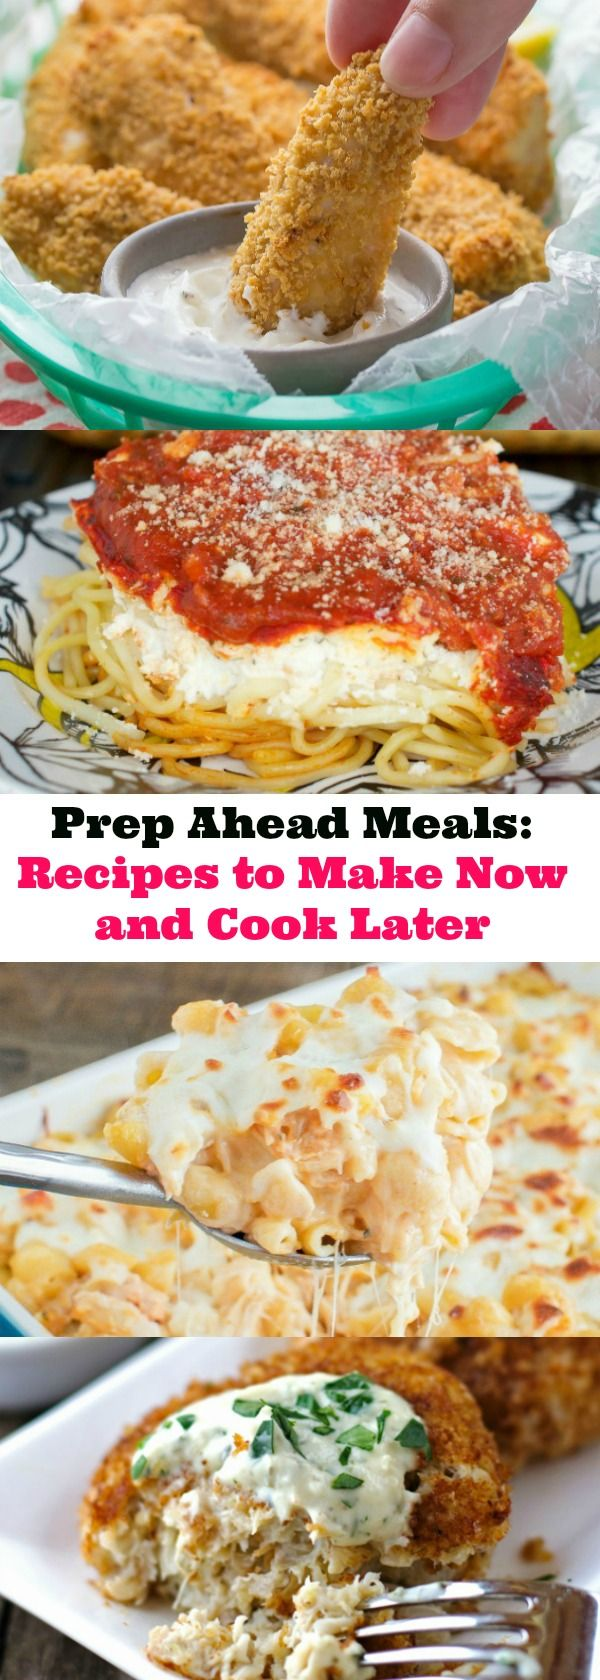 Prep Ahead Meals - Recipes to Make Now and Cook Later - So many great recipes!